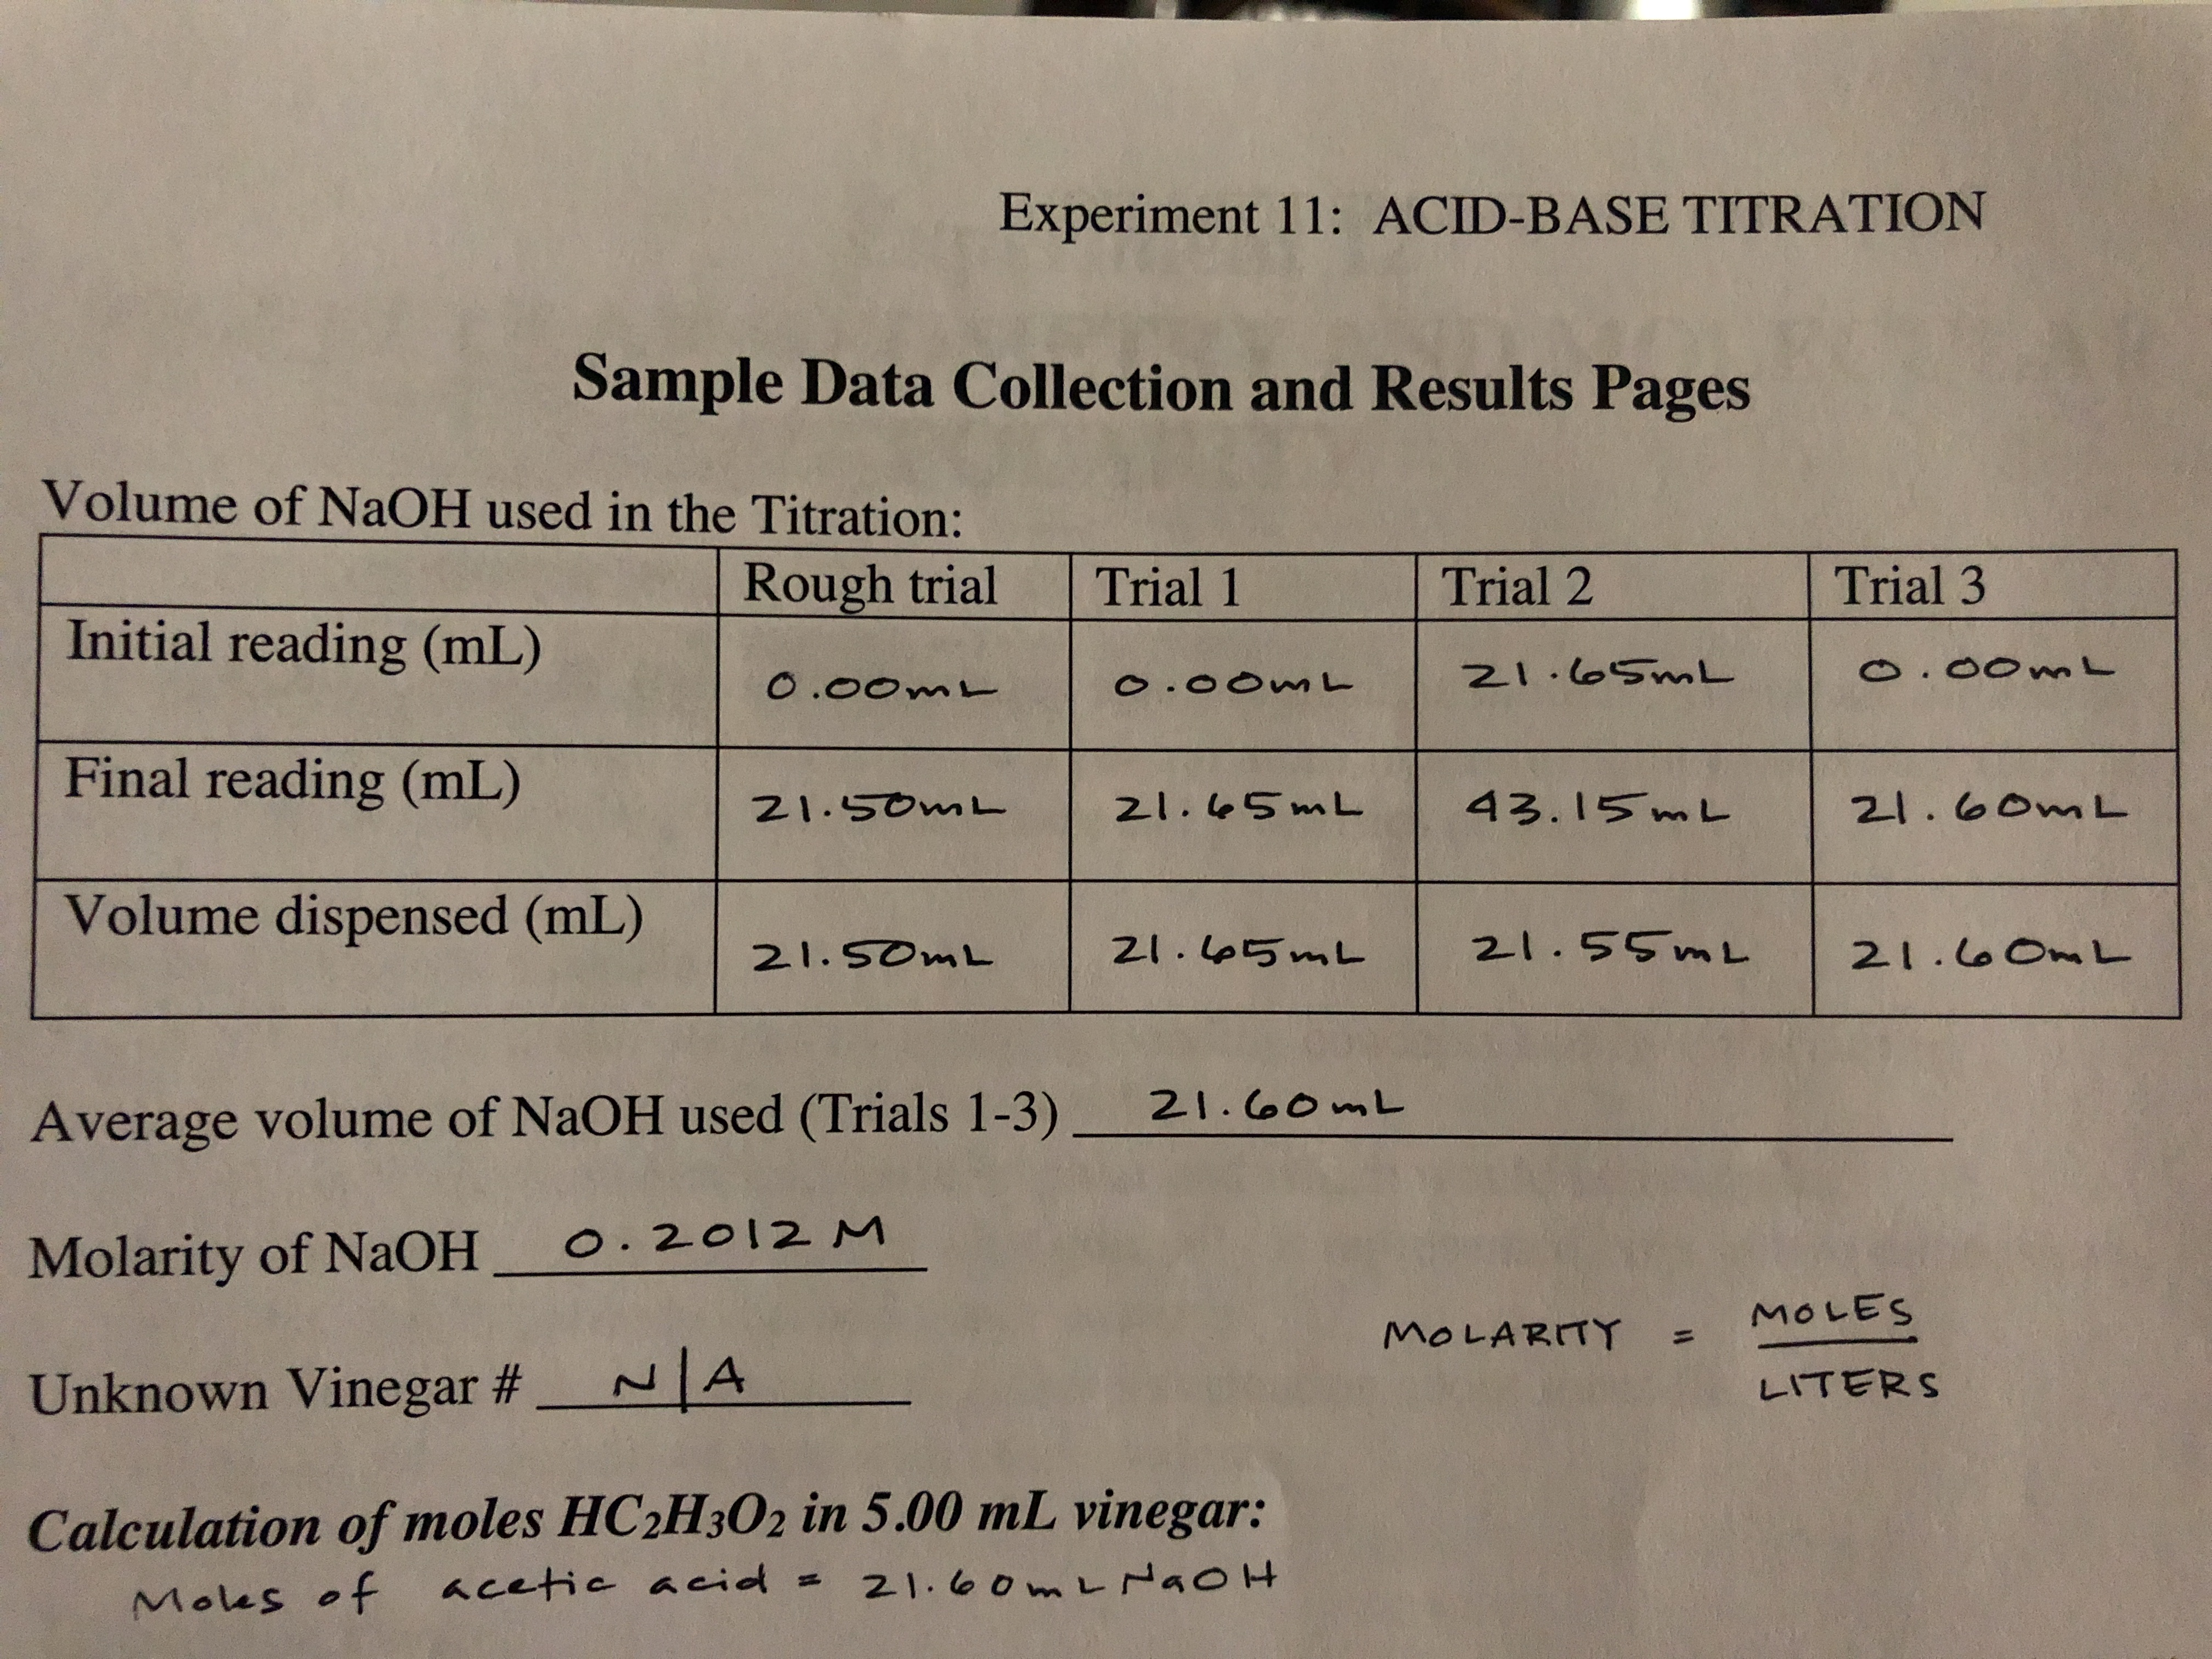 Experiment 11: ACID-BASE TITRATION Sample Data Collection and Results Pages Volume of NaOH used in the Titration: Rough trial Trial 3 Trial 2 Trial 1 Initial reading (mL) N1.0SML o.00mL O .00m . OOm Final reading (mL) 43.15 mL 21.50mL 21.60ML 21.45ML Volume dispensed (mL) 2-1.55ML ZI.5mL 21.SOML 21.0OnL 21. o0mL Average volume of NAOH used (Trials 1-3) O. 2012 M Molarity of NaOH MOLES MOLARITY A Unknown Vinegar #_ LITERS Calculation of moles HC2H302 in 5.00 mL vinegar: 21. 00m L NaoH Mous of cetie acid